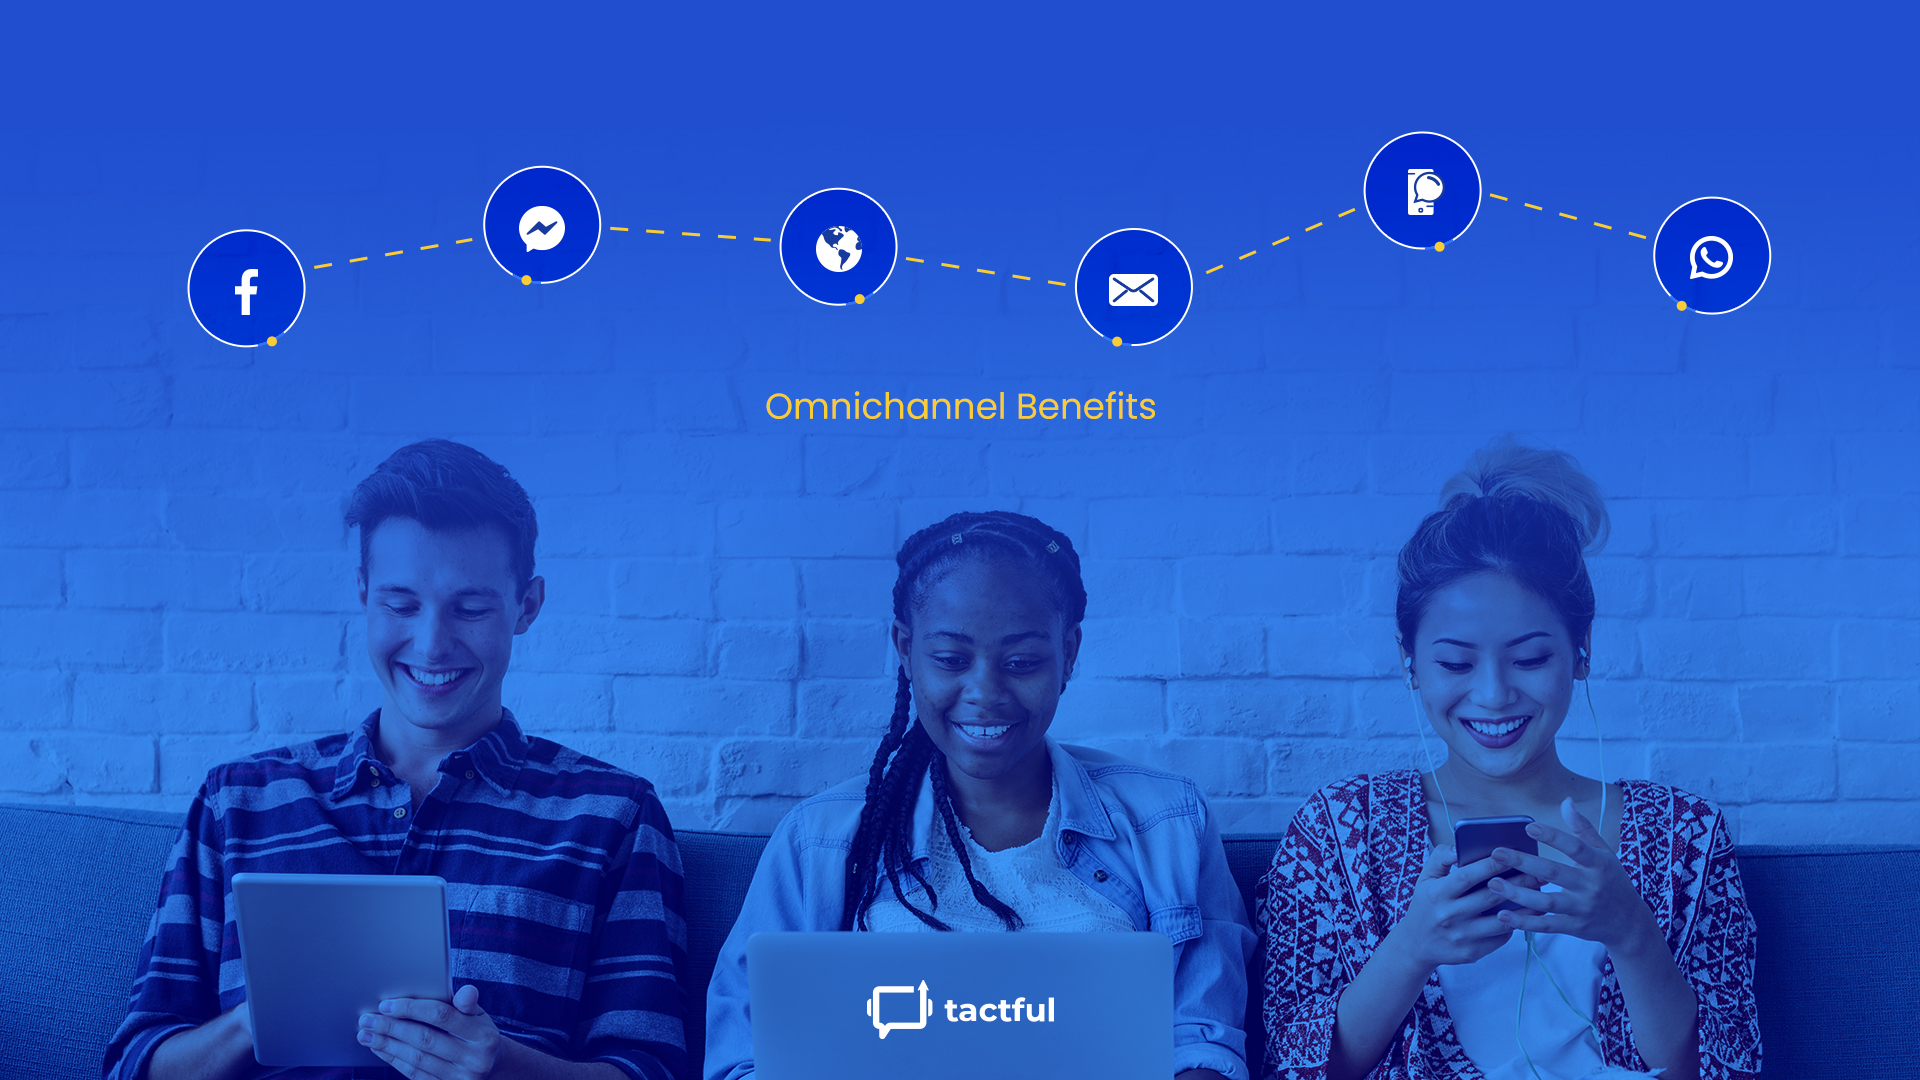 Omnichannel Benefits